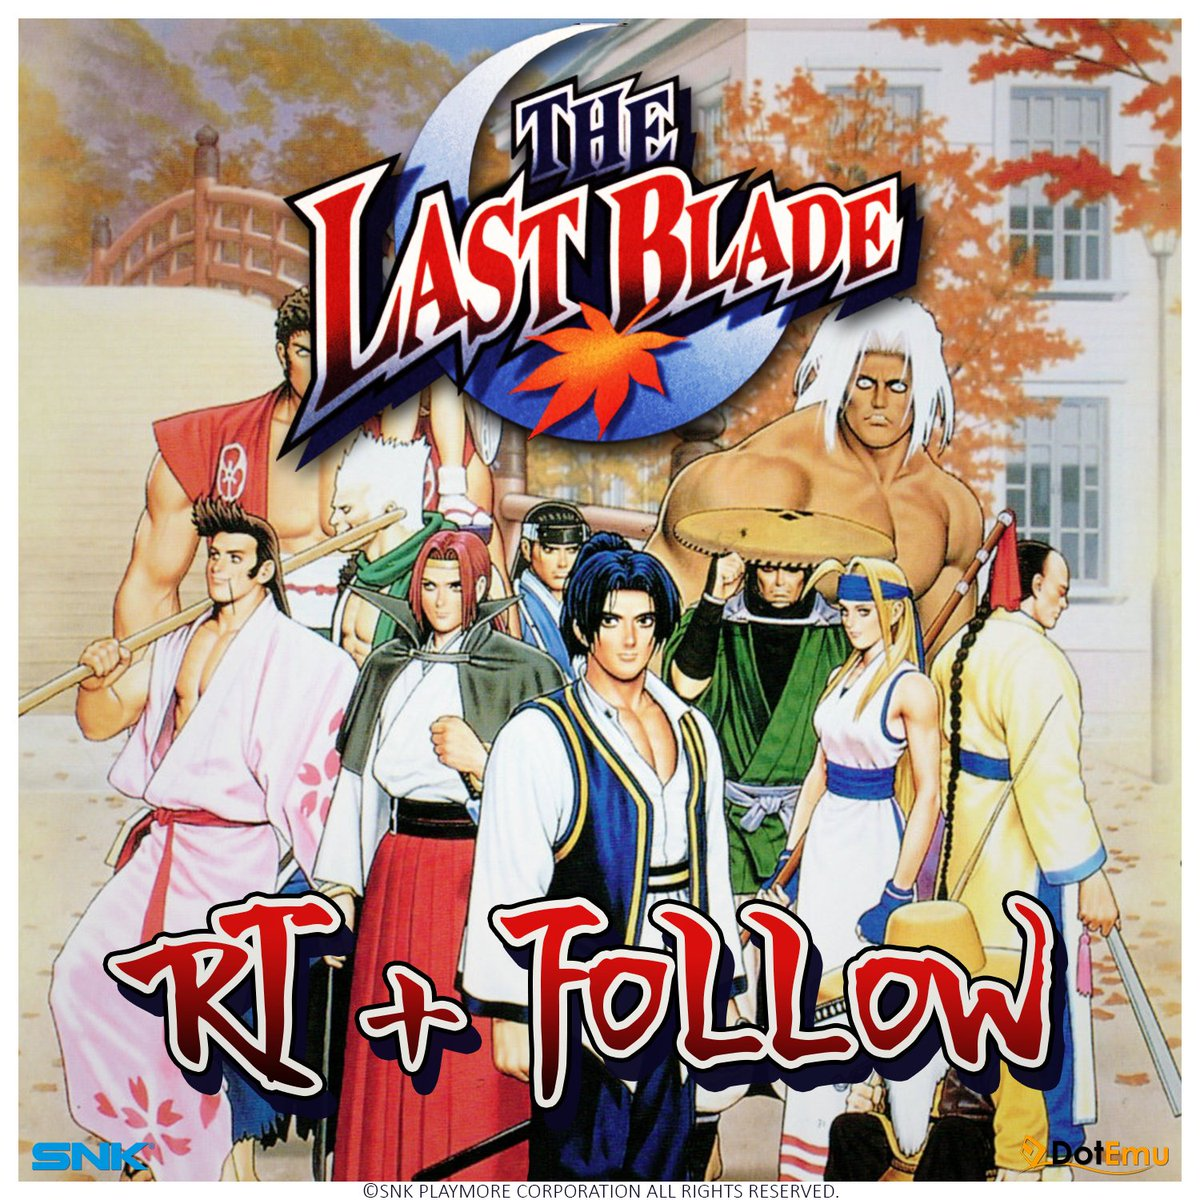 It's #giveaway time!  Follow + RT this tweet before the 10/24 and get a chance to win THE LAST BLADE on Steam! https://t.co/PR7ORq9SPC